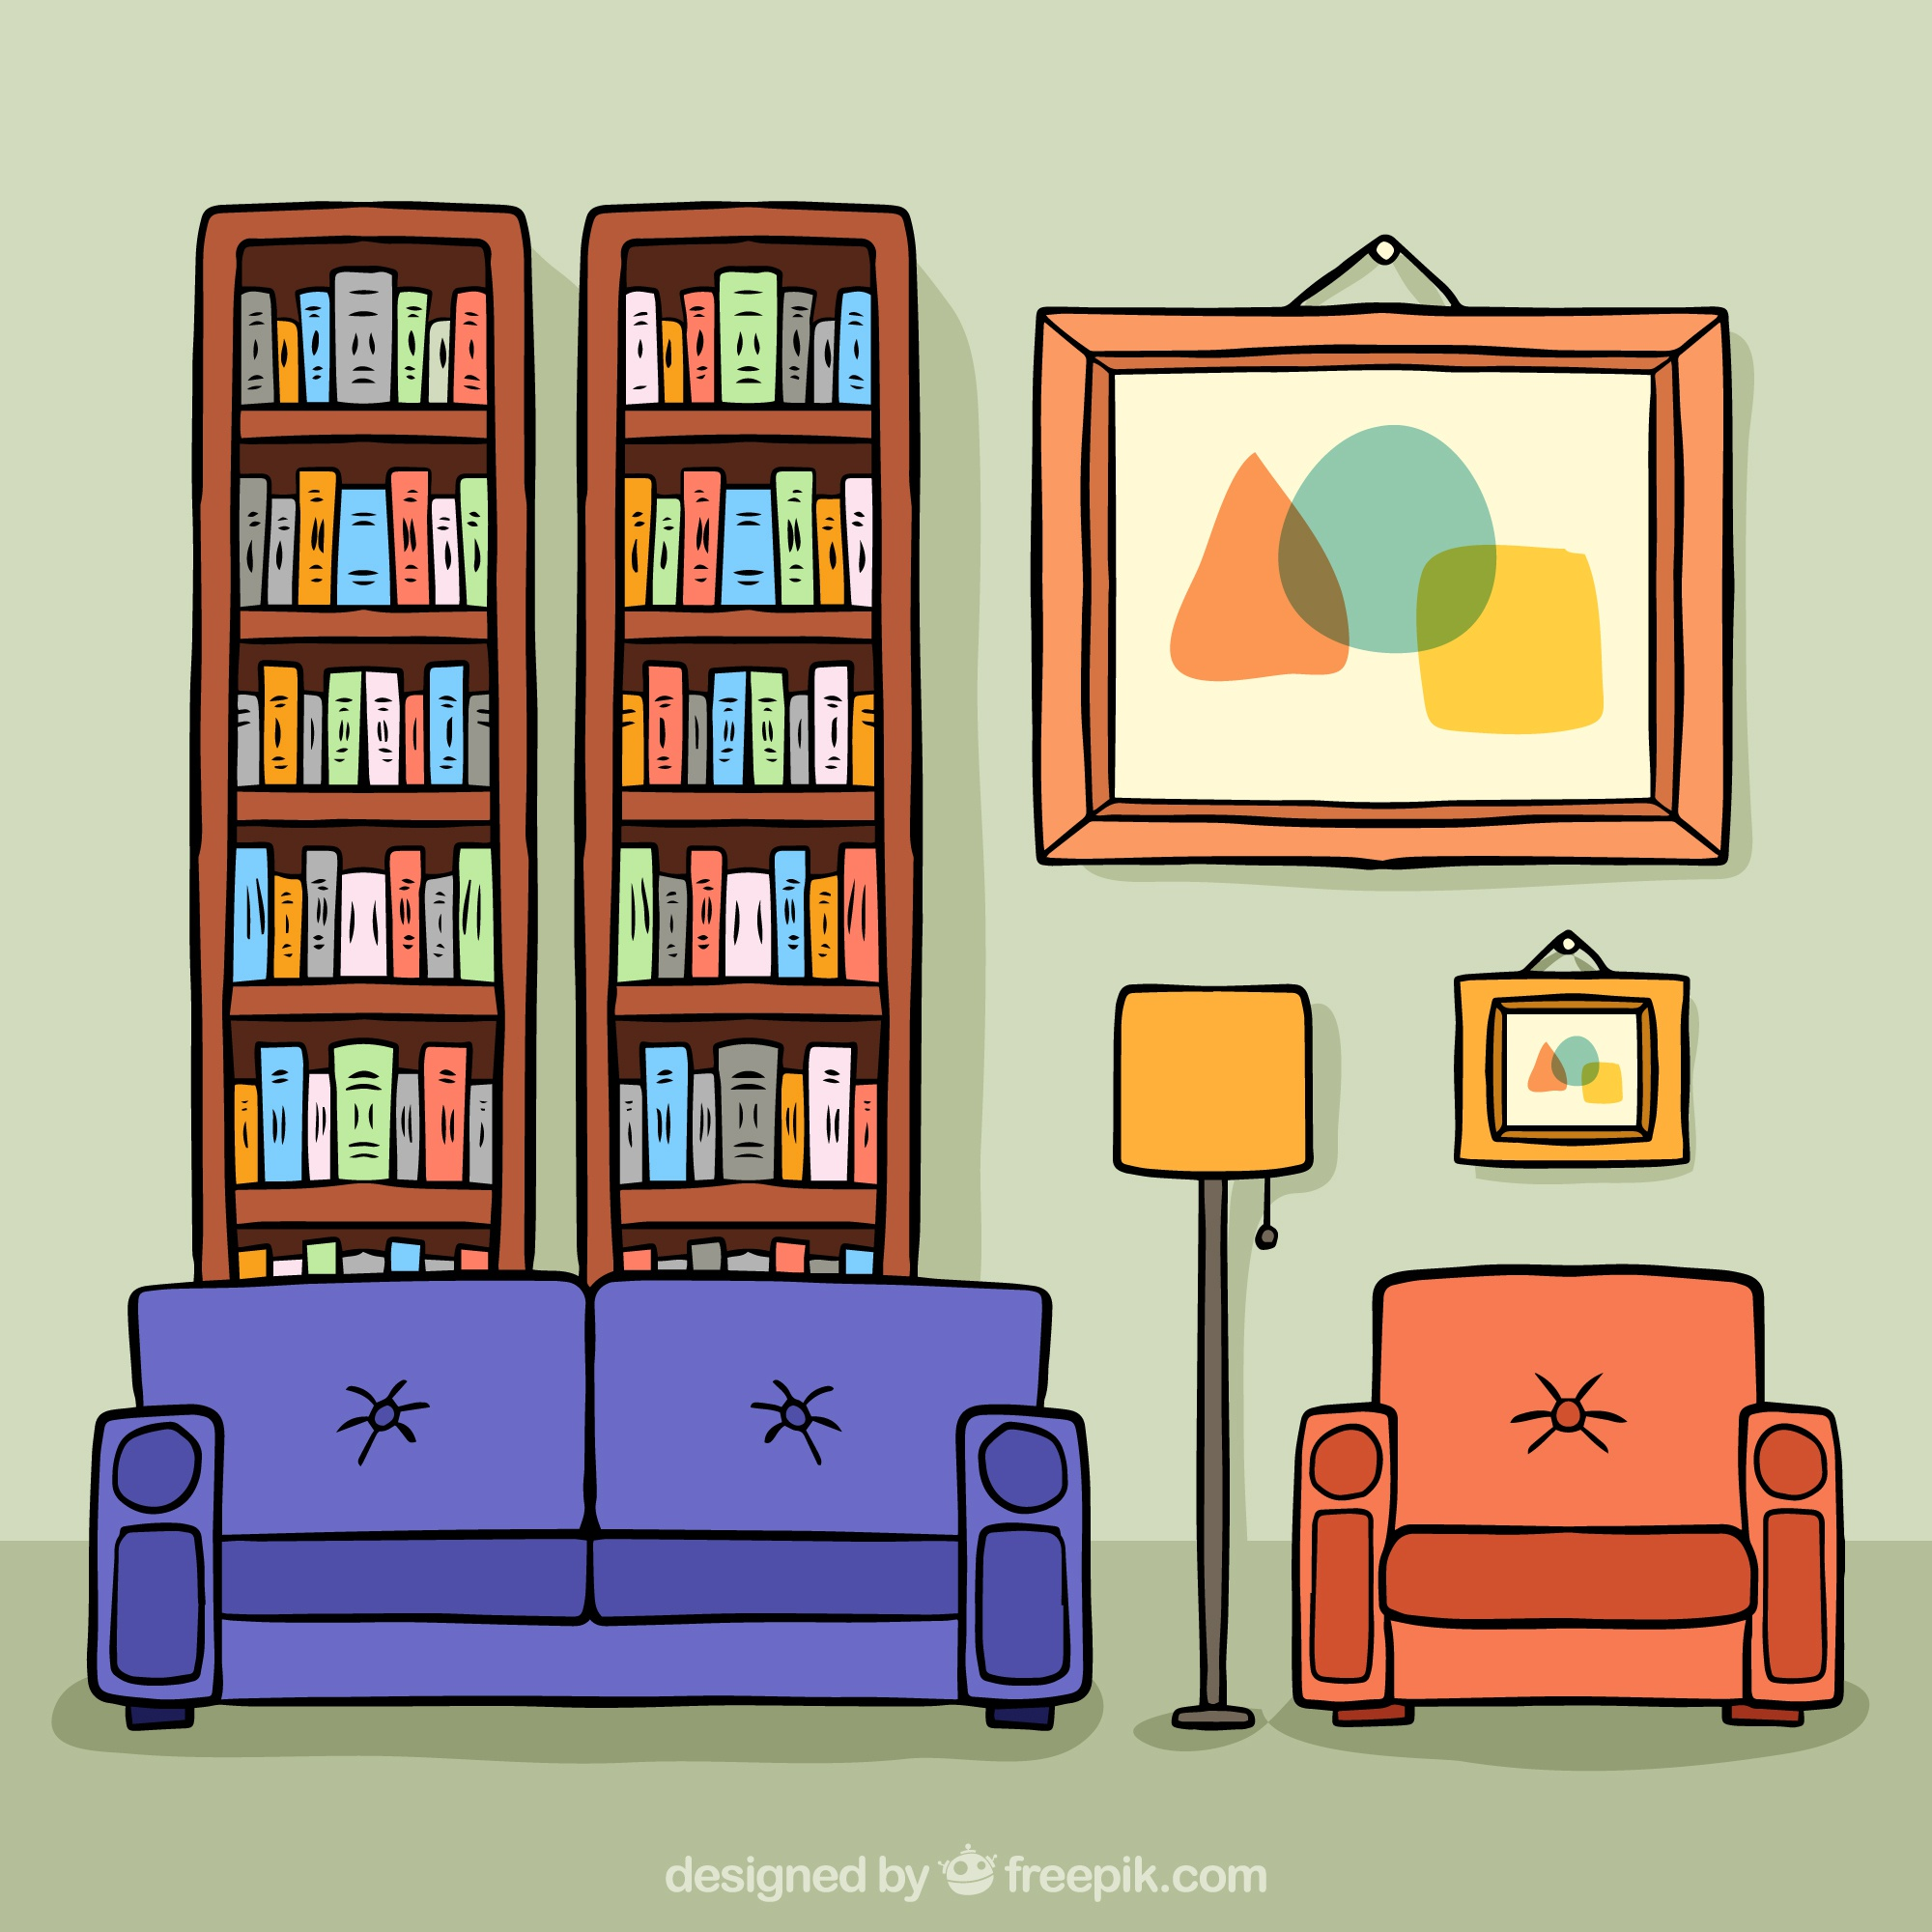 Illustration of living room with table and shelves